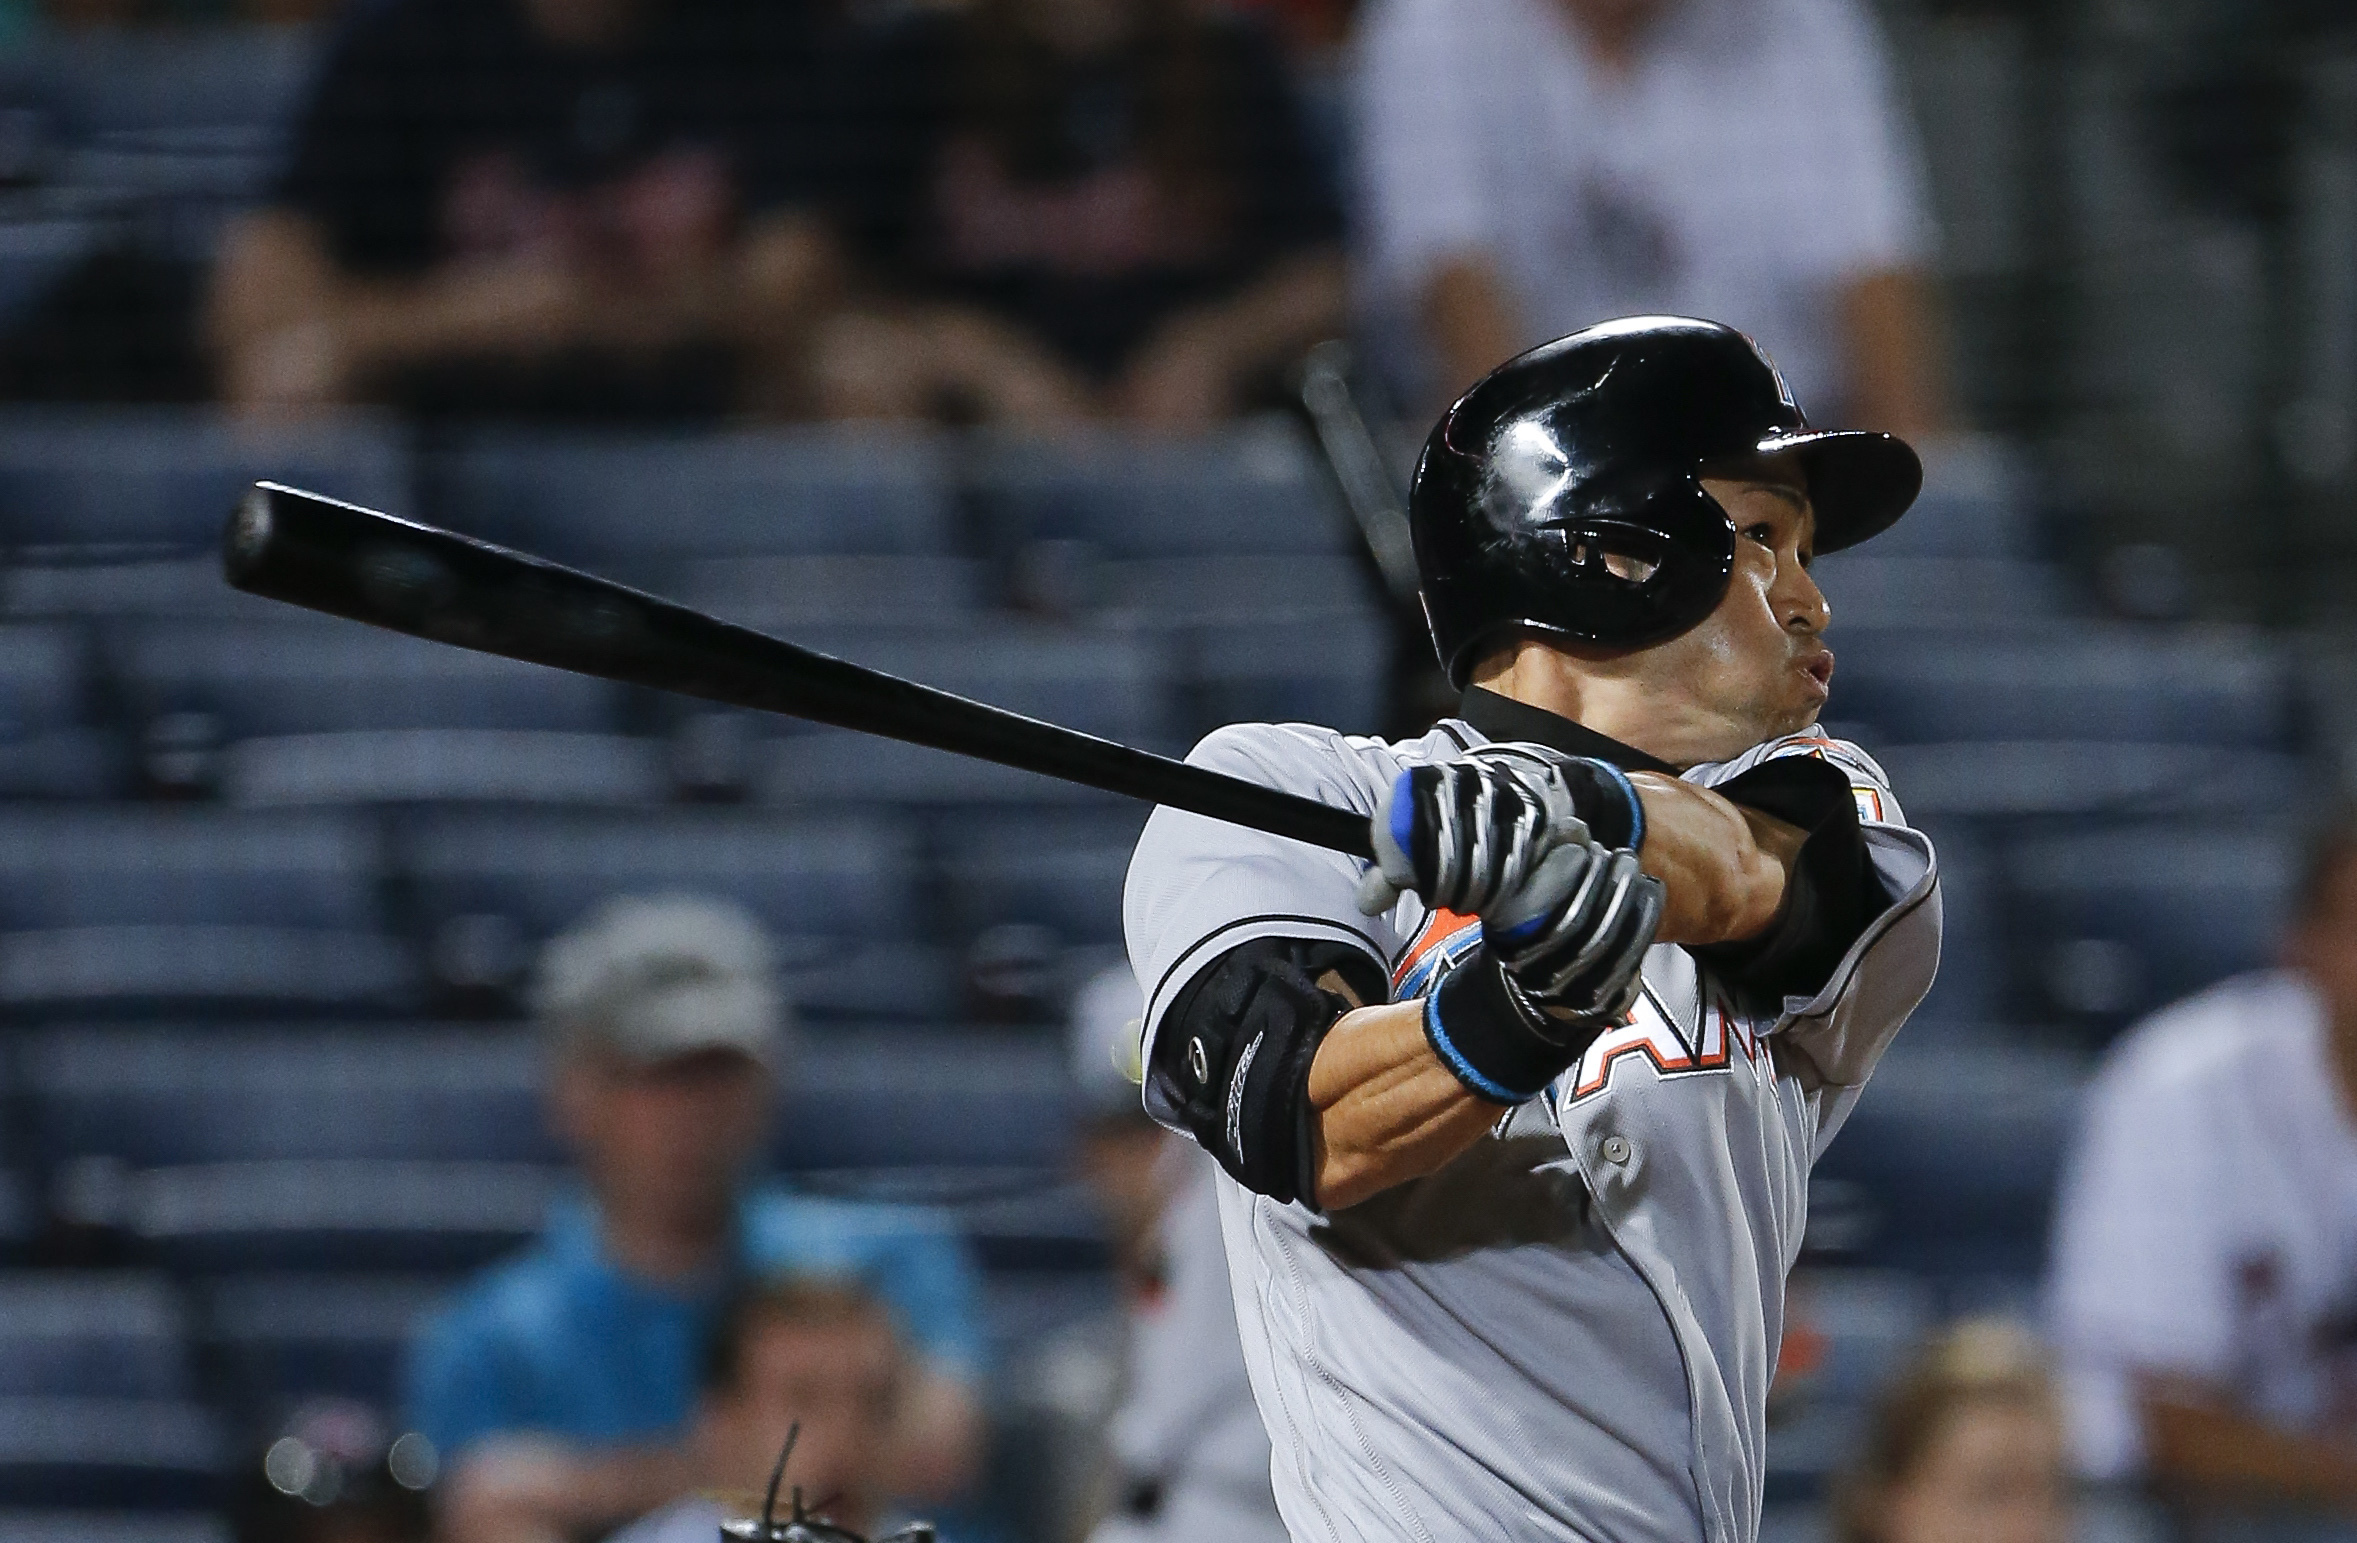 Miami Marlins pinch hitter Ichiro Suzuki (51) flies out to center in the eighth inning of a baseball game against the Atlanta Braves, Thursday, June 30, 2016, in Atlanta. (AP Photo/John Bazemore)